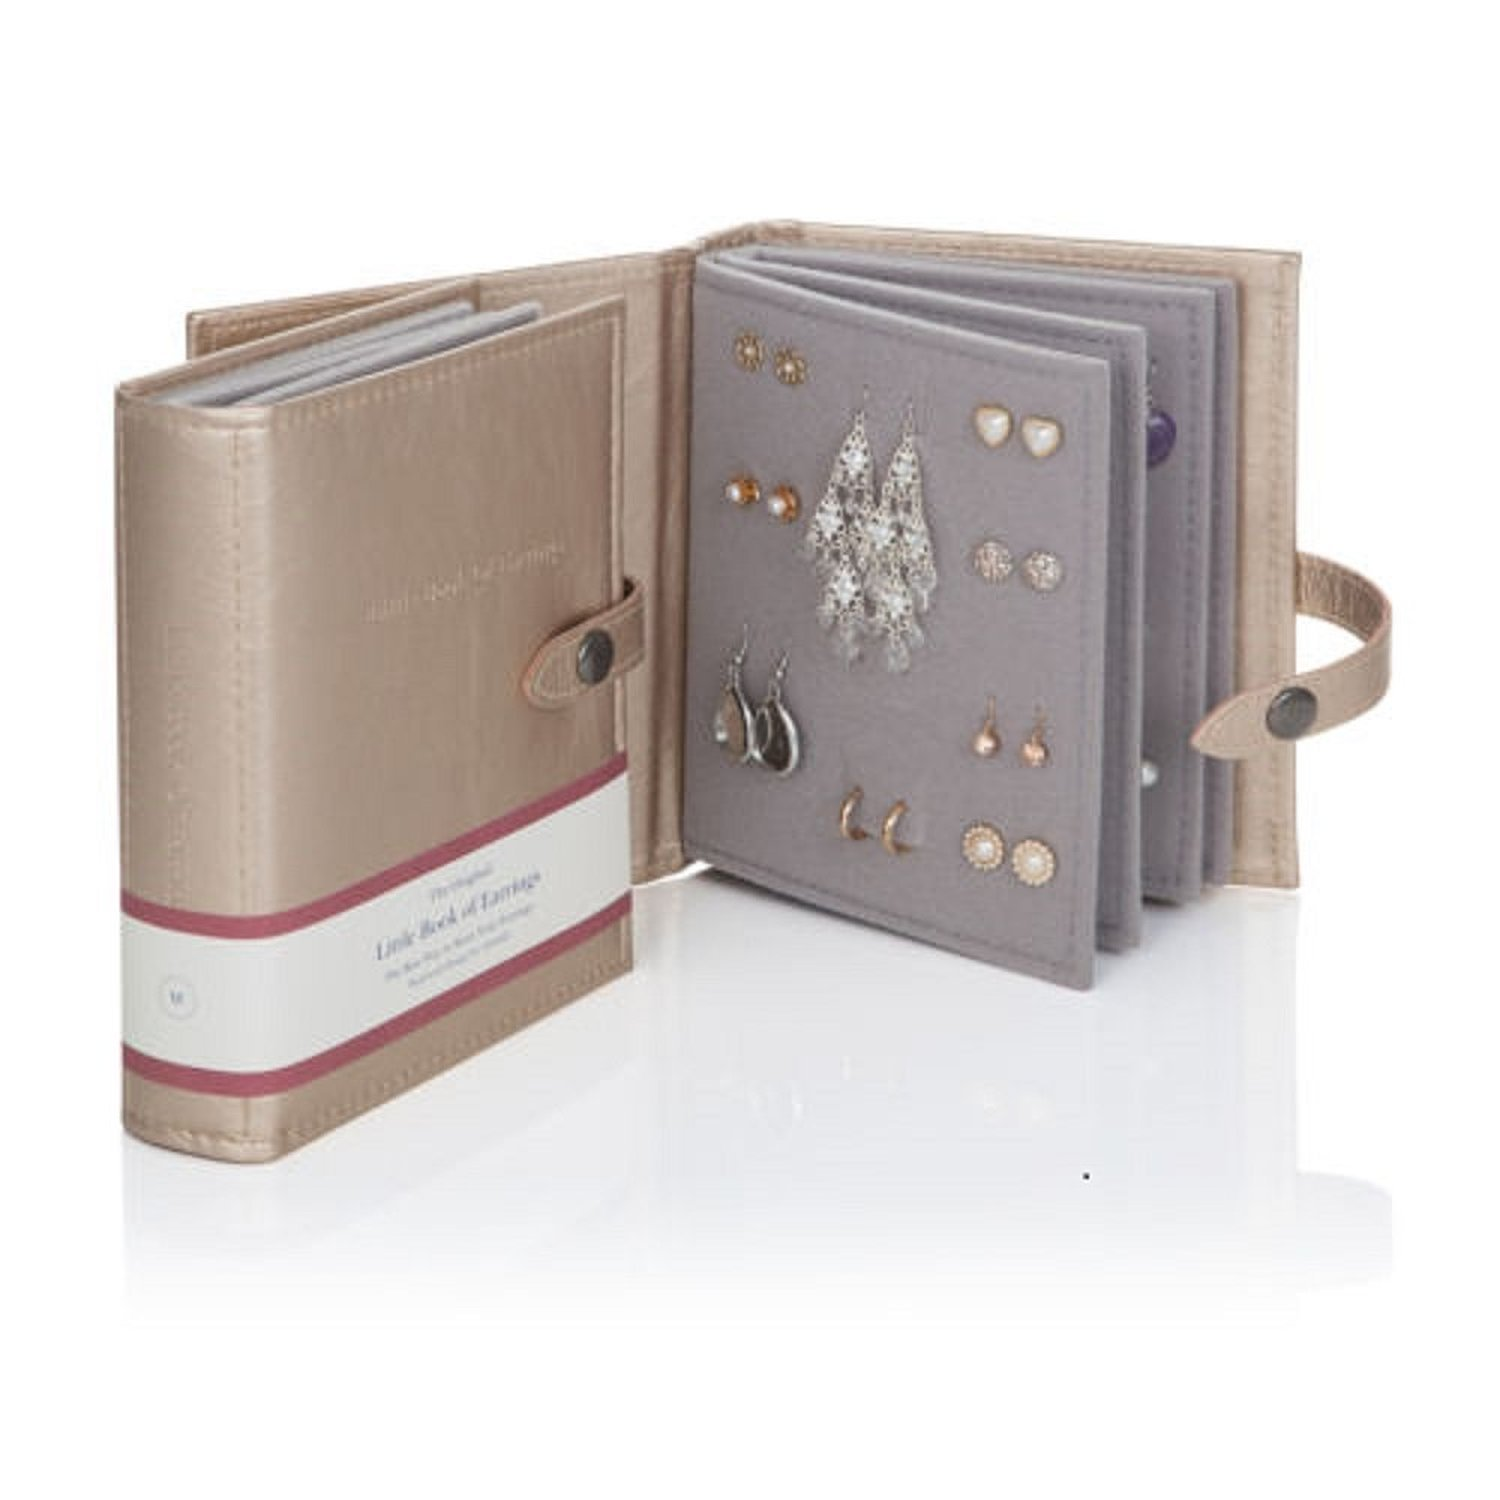 Large Size - Little Book of Earrings - A Small Book for Keeping Your Earrings Safe! (Gold)